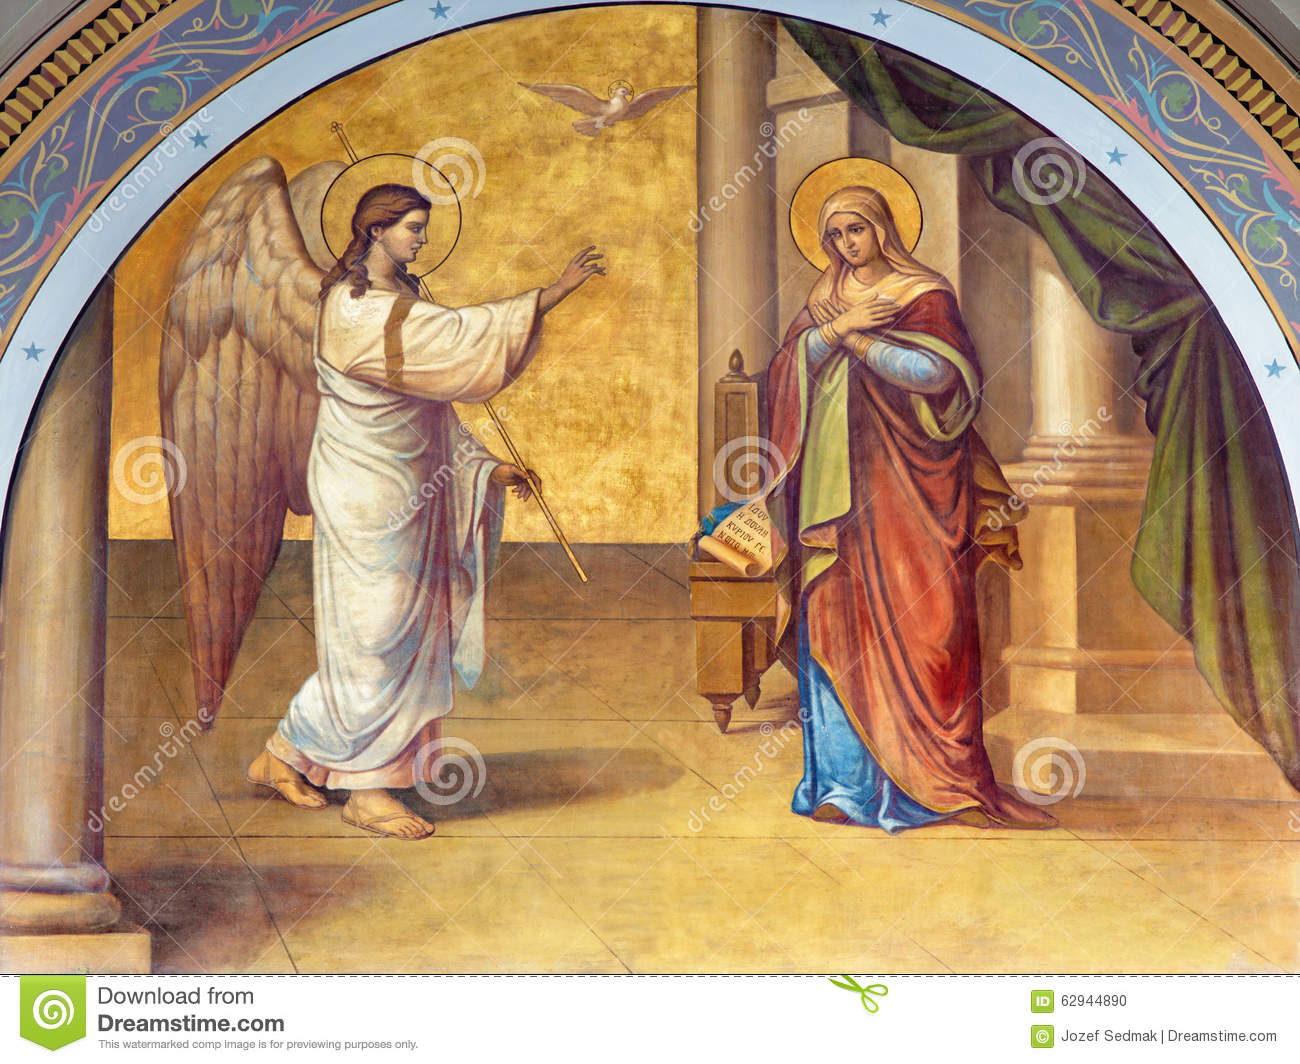 Athens - The fresco of Annunciation on the facade of Metropolitan Cathedaral by B. Antoniasis (1895)